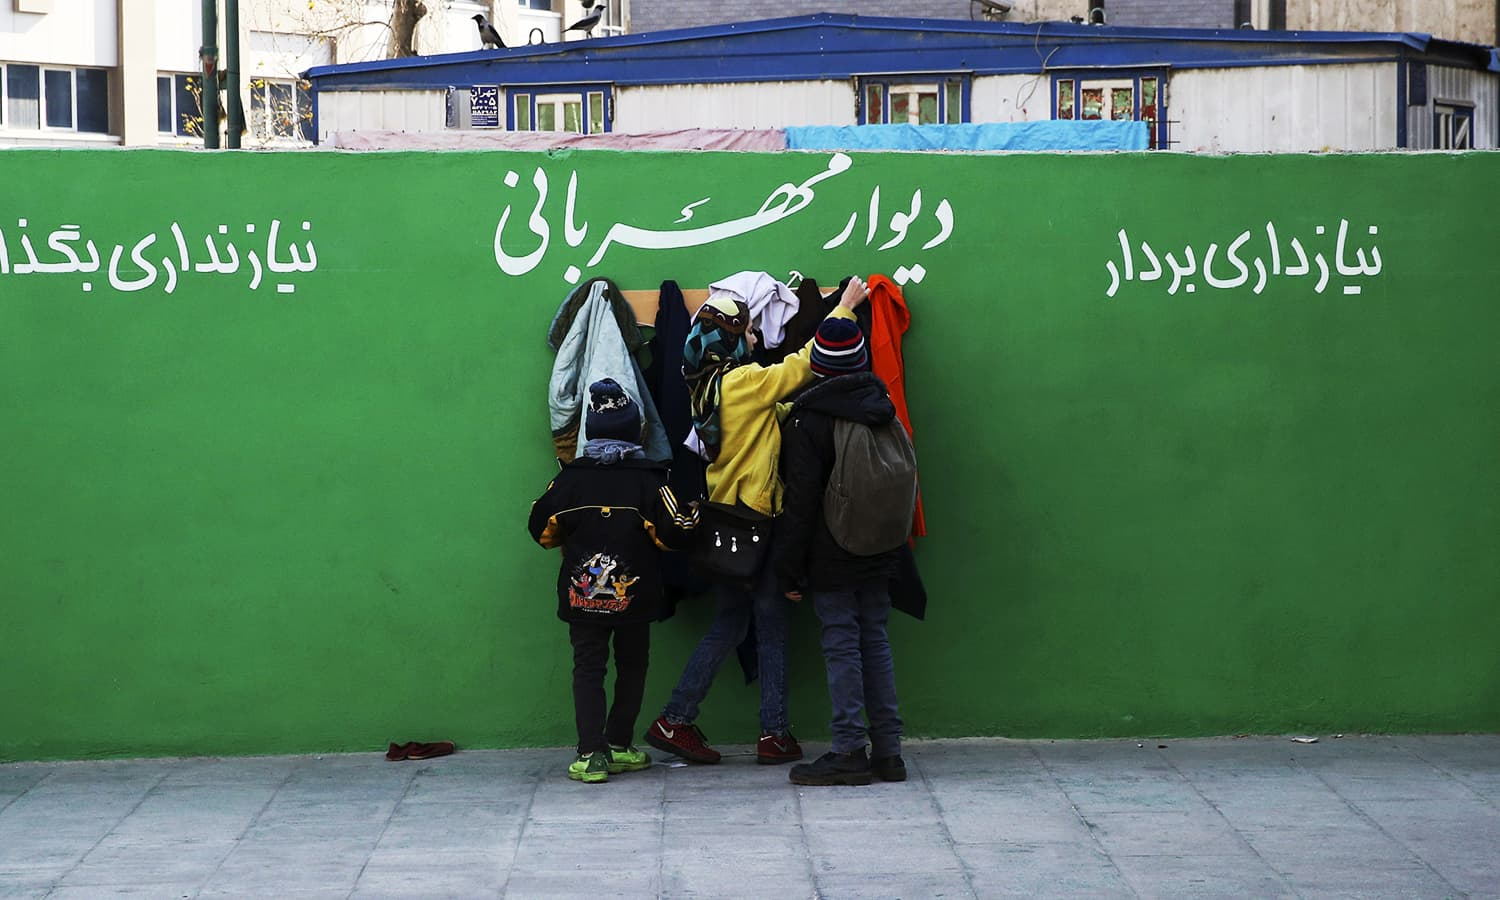 """In this Thursday, Jan. 7, 2016 photo, youths check clothes hung on hooks at an outdoor charity wall marked, """"Wall of Kindness,"""" next to a subway station entrance in central Tehran, Iran. ─ AP"""